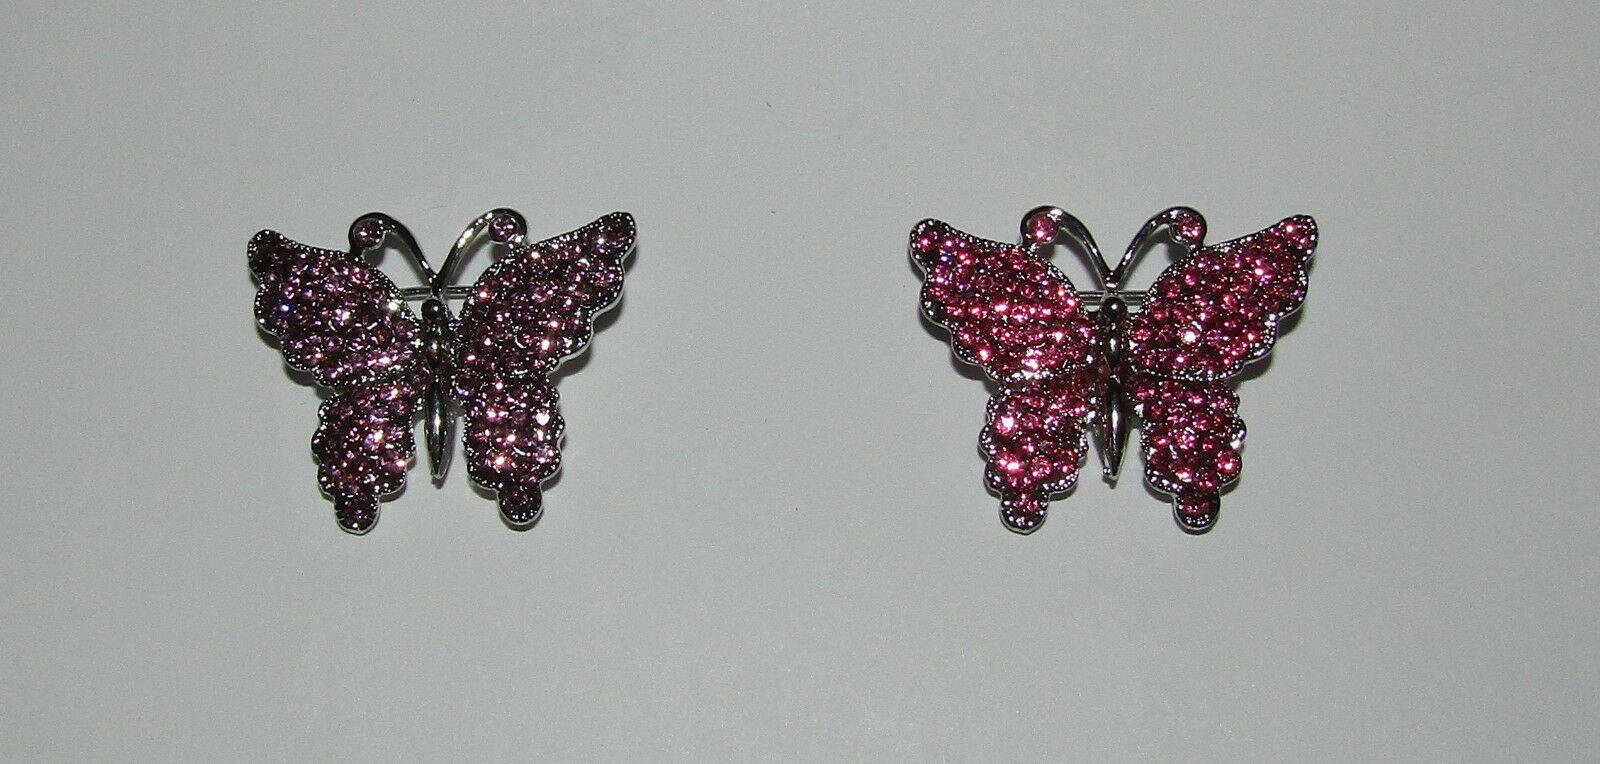 Primary image for Butterfly Pin Silver Tone New Crystal Accents Jewelry Butterflies Brooch